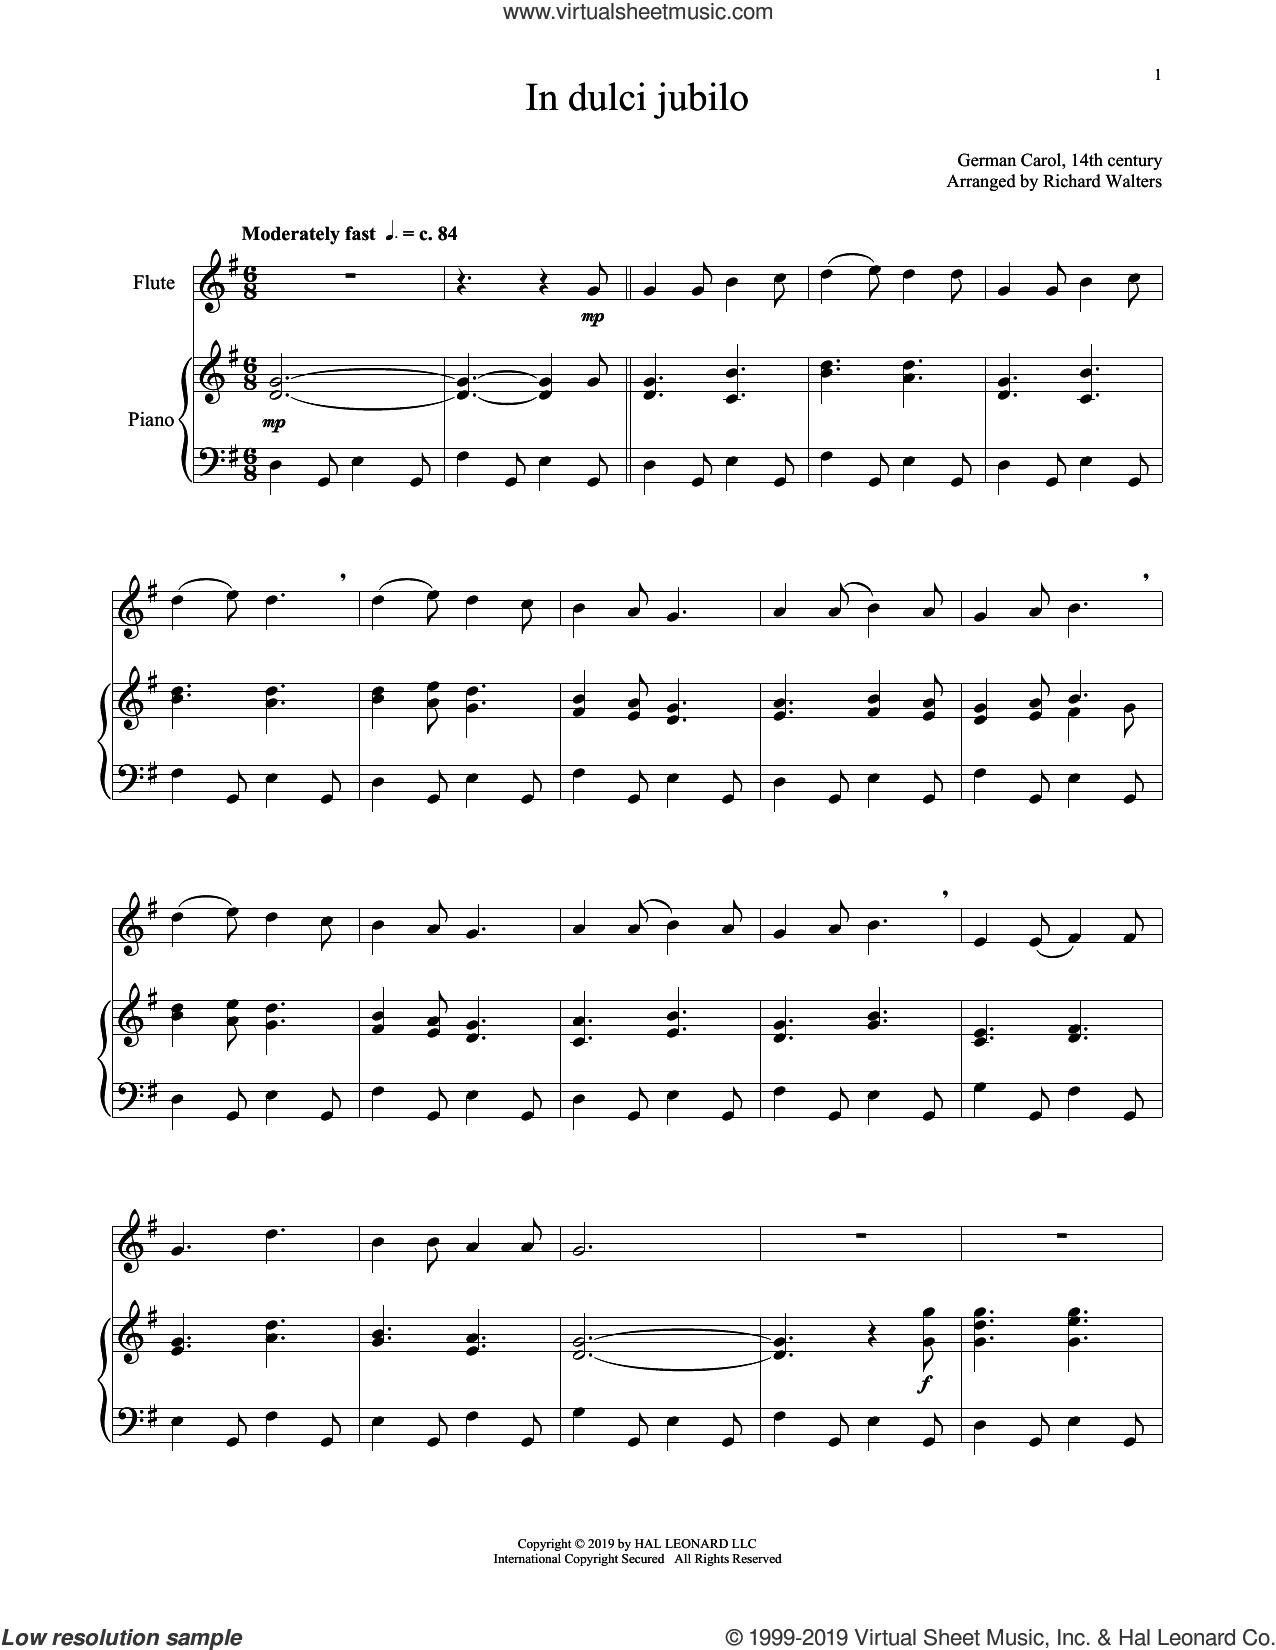 In Dulci Jubilo sheet music for flute and piano  and 14th Century German Melody, intermediate skill level